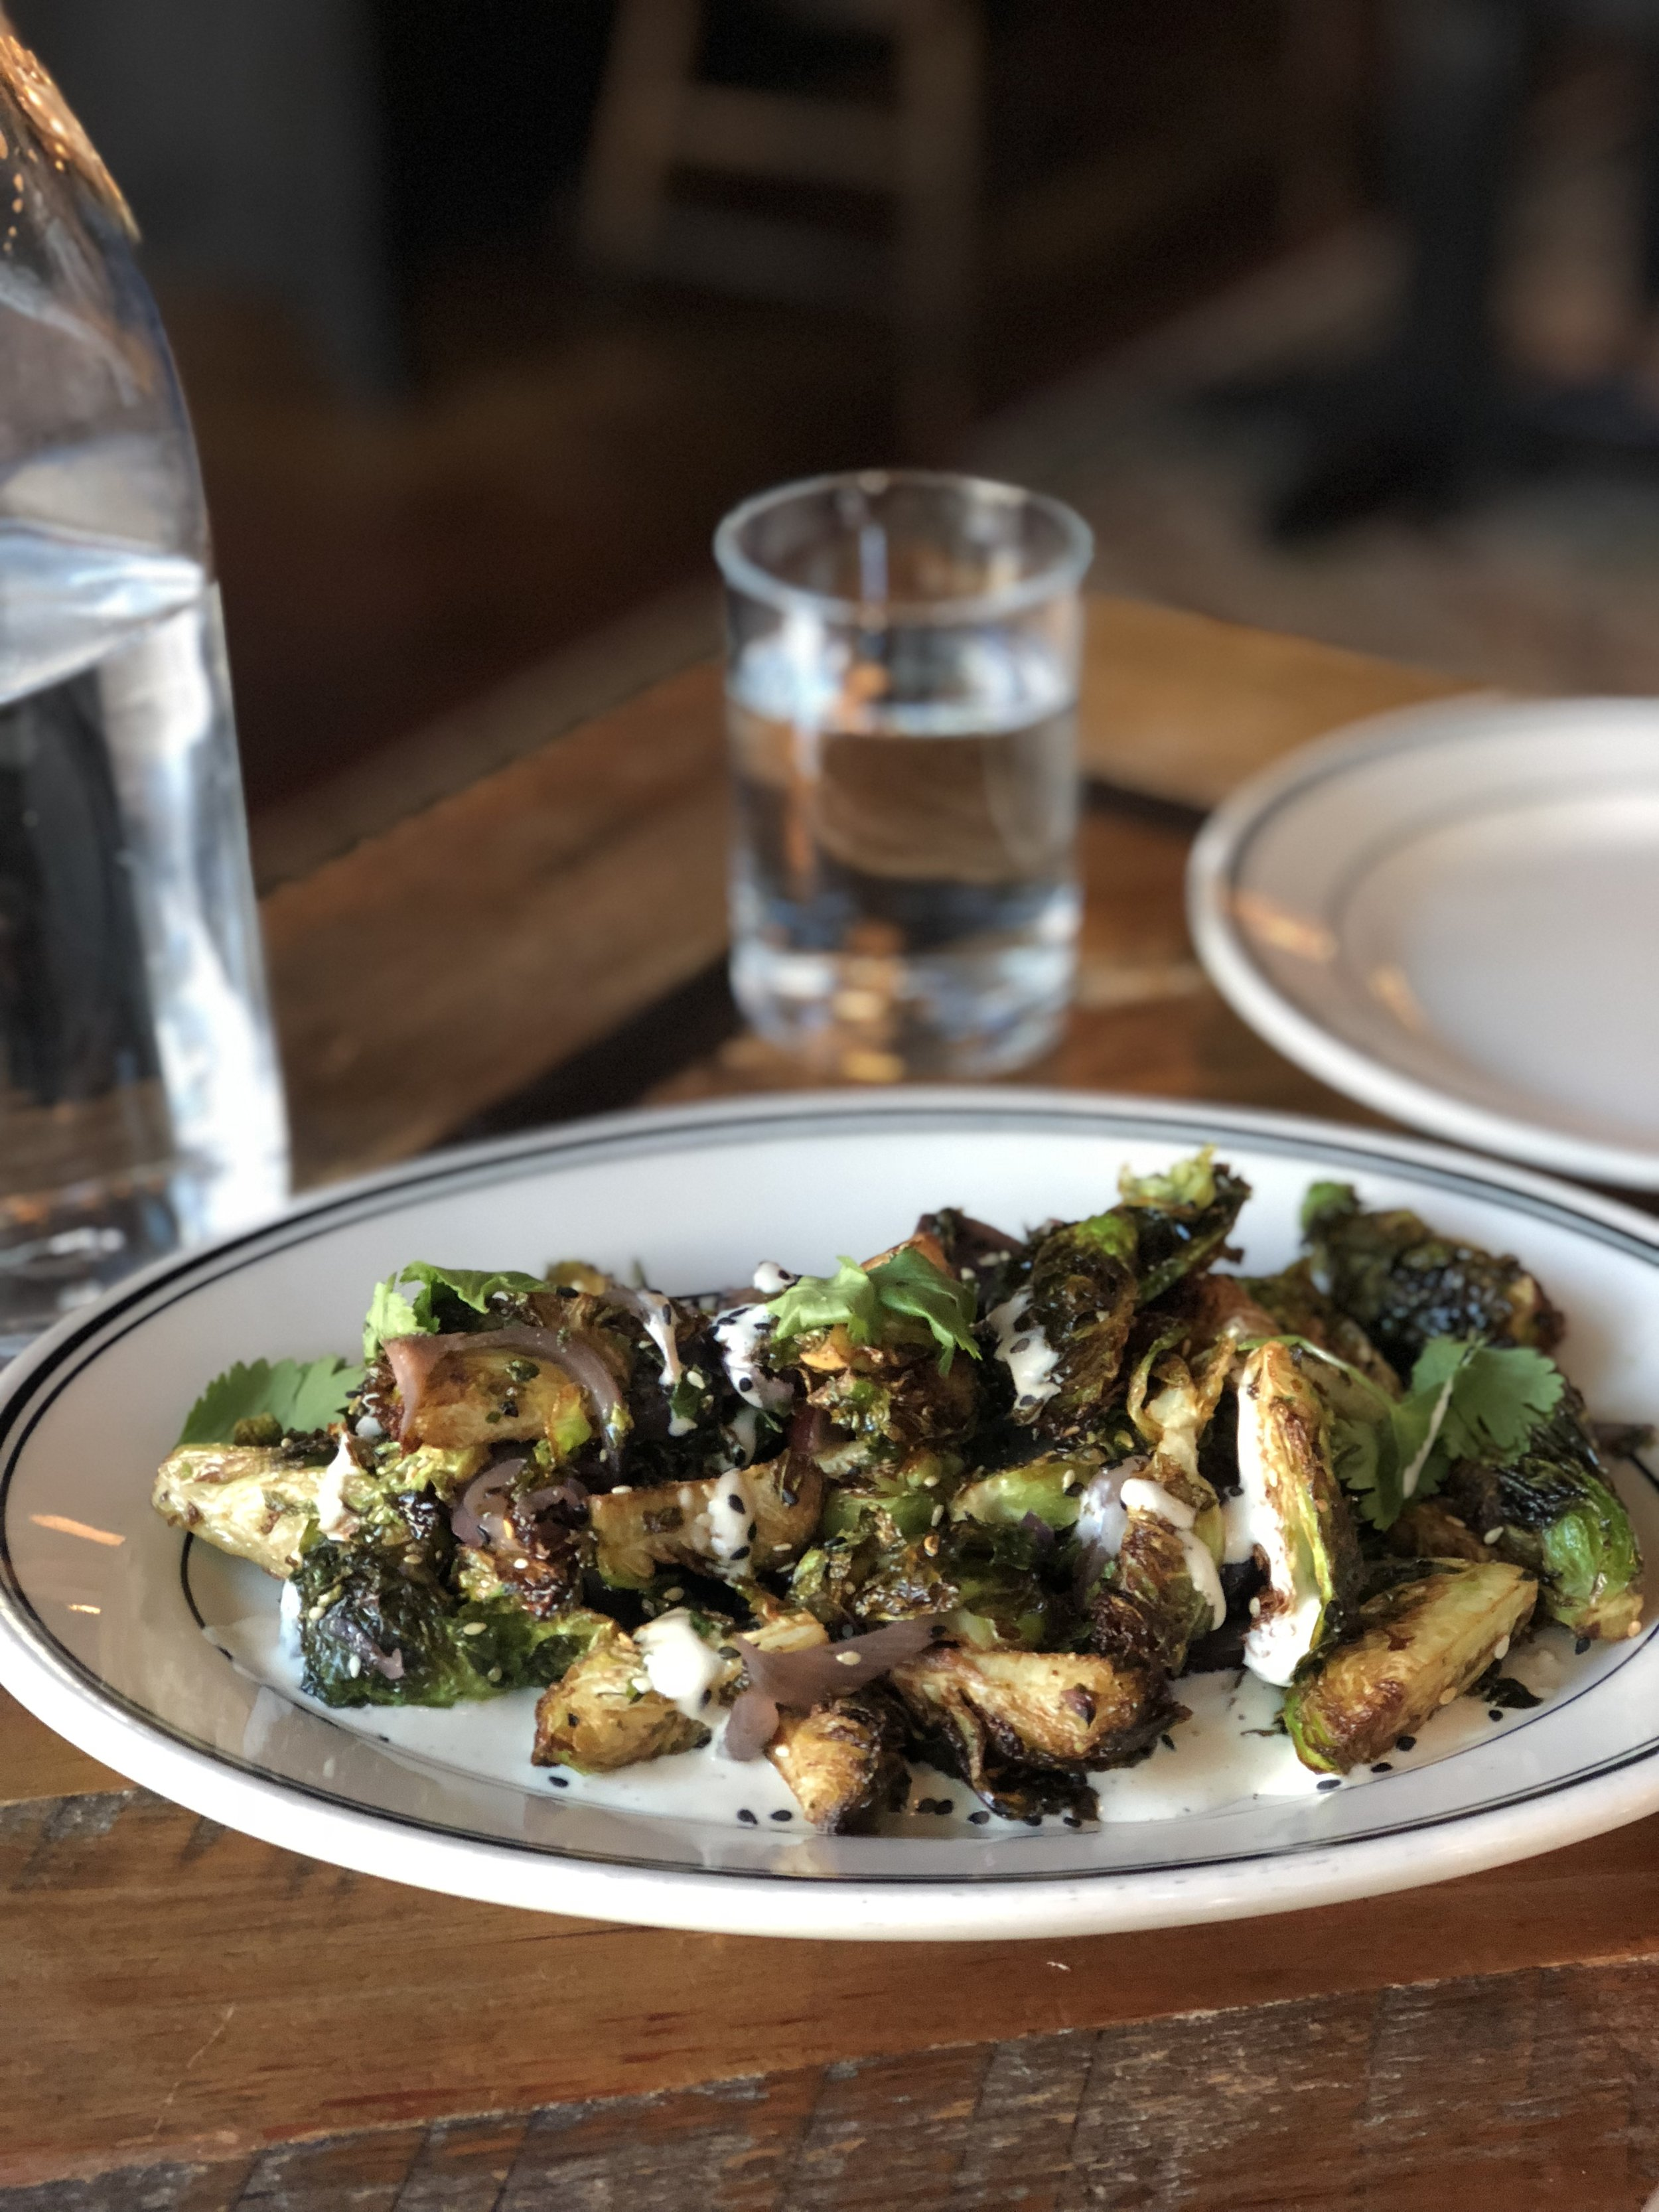 Fried Brussels sprouts with roasted red grapes and tahini